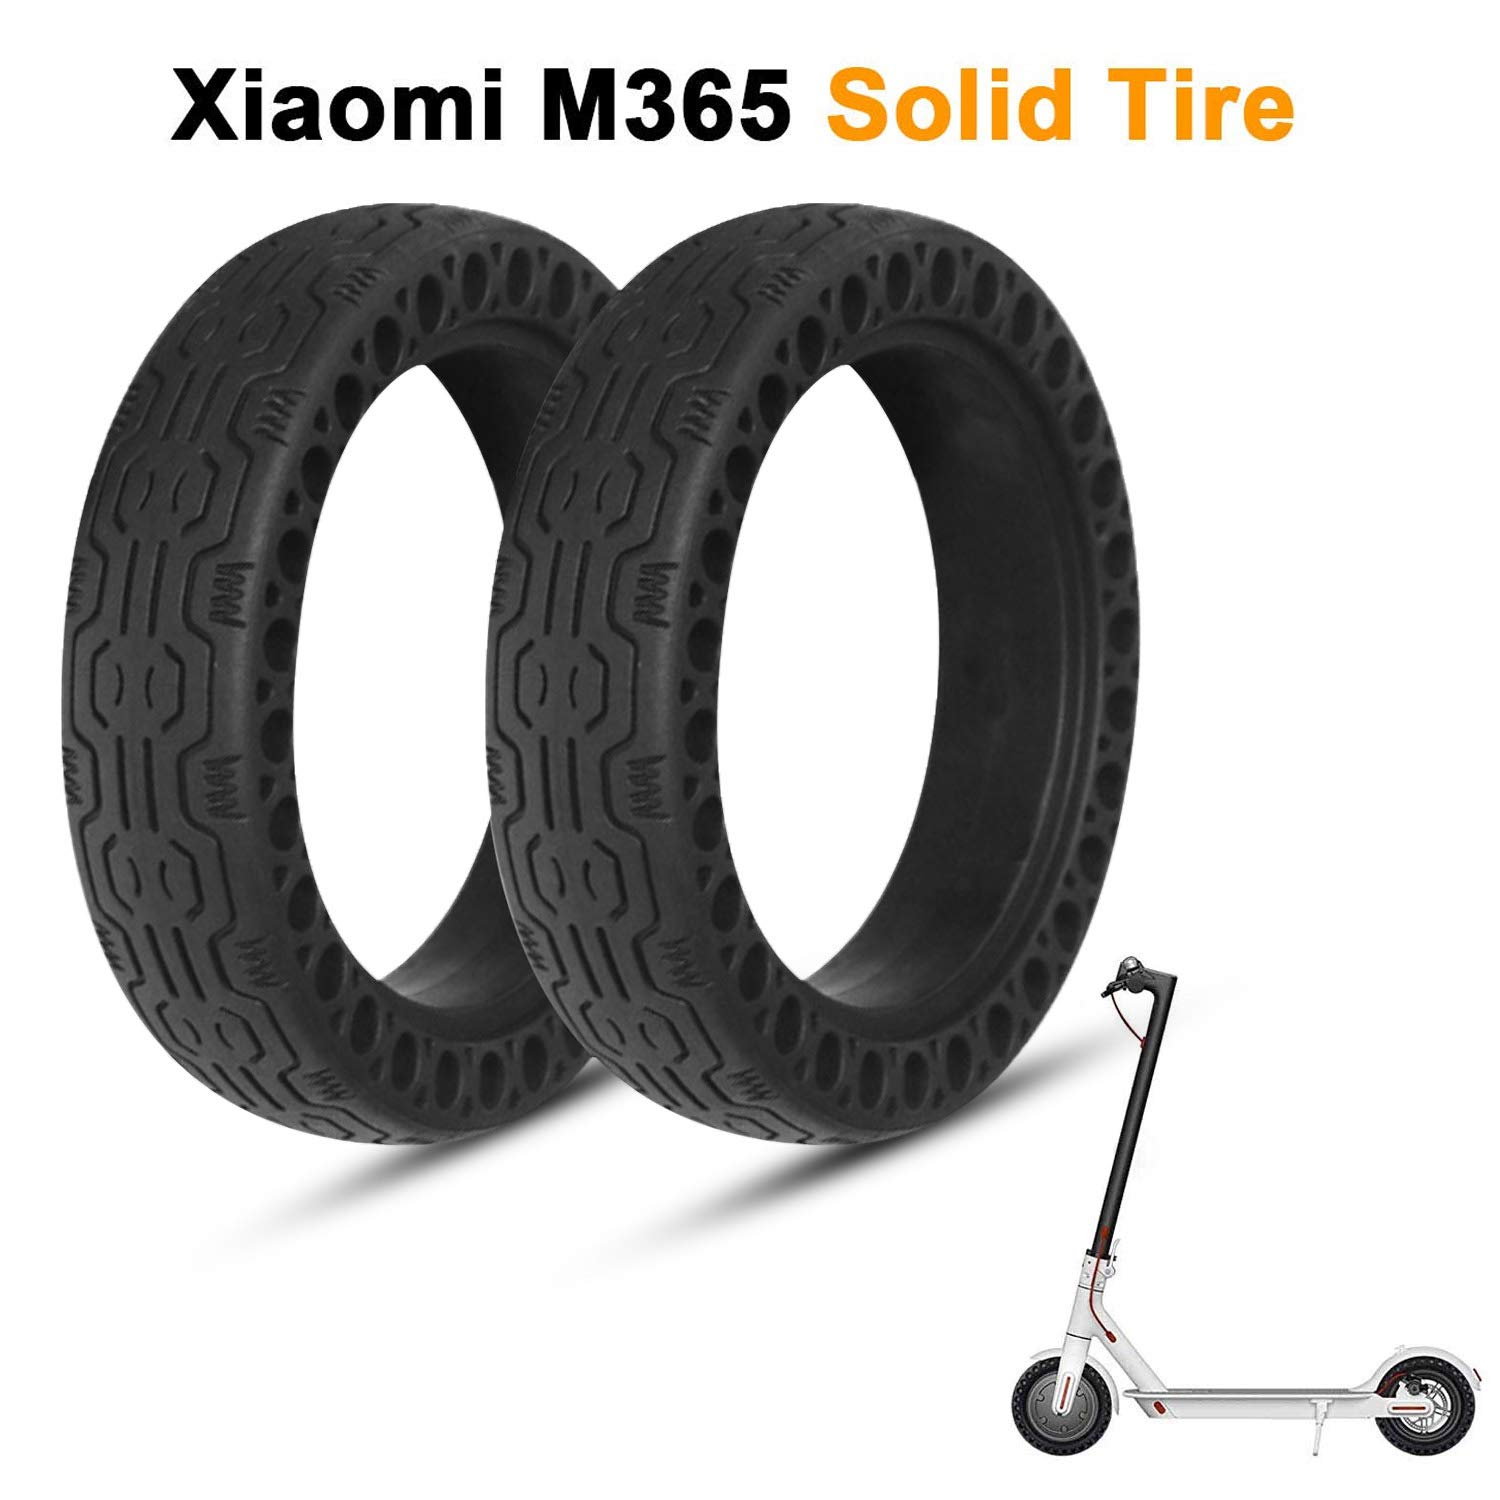 LuYang Solid Tire Replacement for Electric Scooter Xiaomi Mi m365 / gotrax gxl V2,8.5 inches Solid Tires Explosion-Proof Tire for Xiaomi Mijia M365 Electric Scooter【Two Piece/Black】 by LuYang